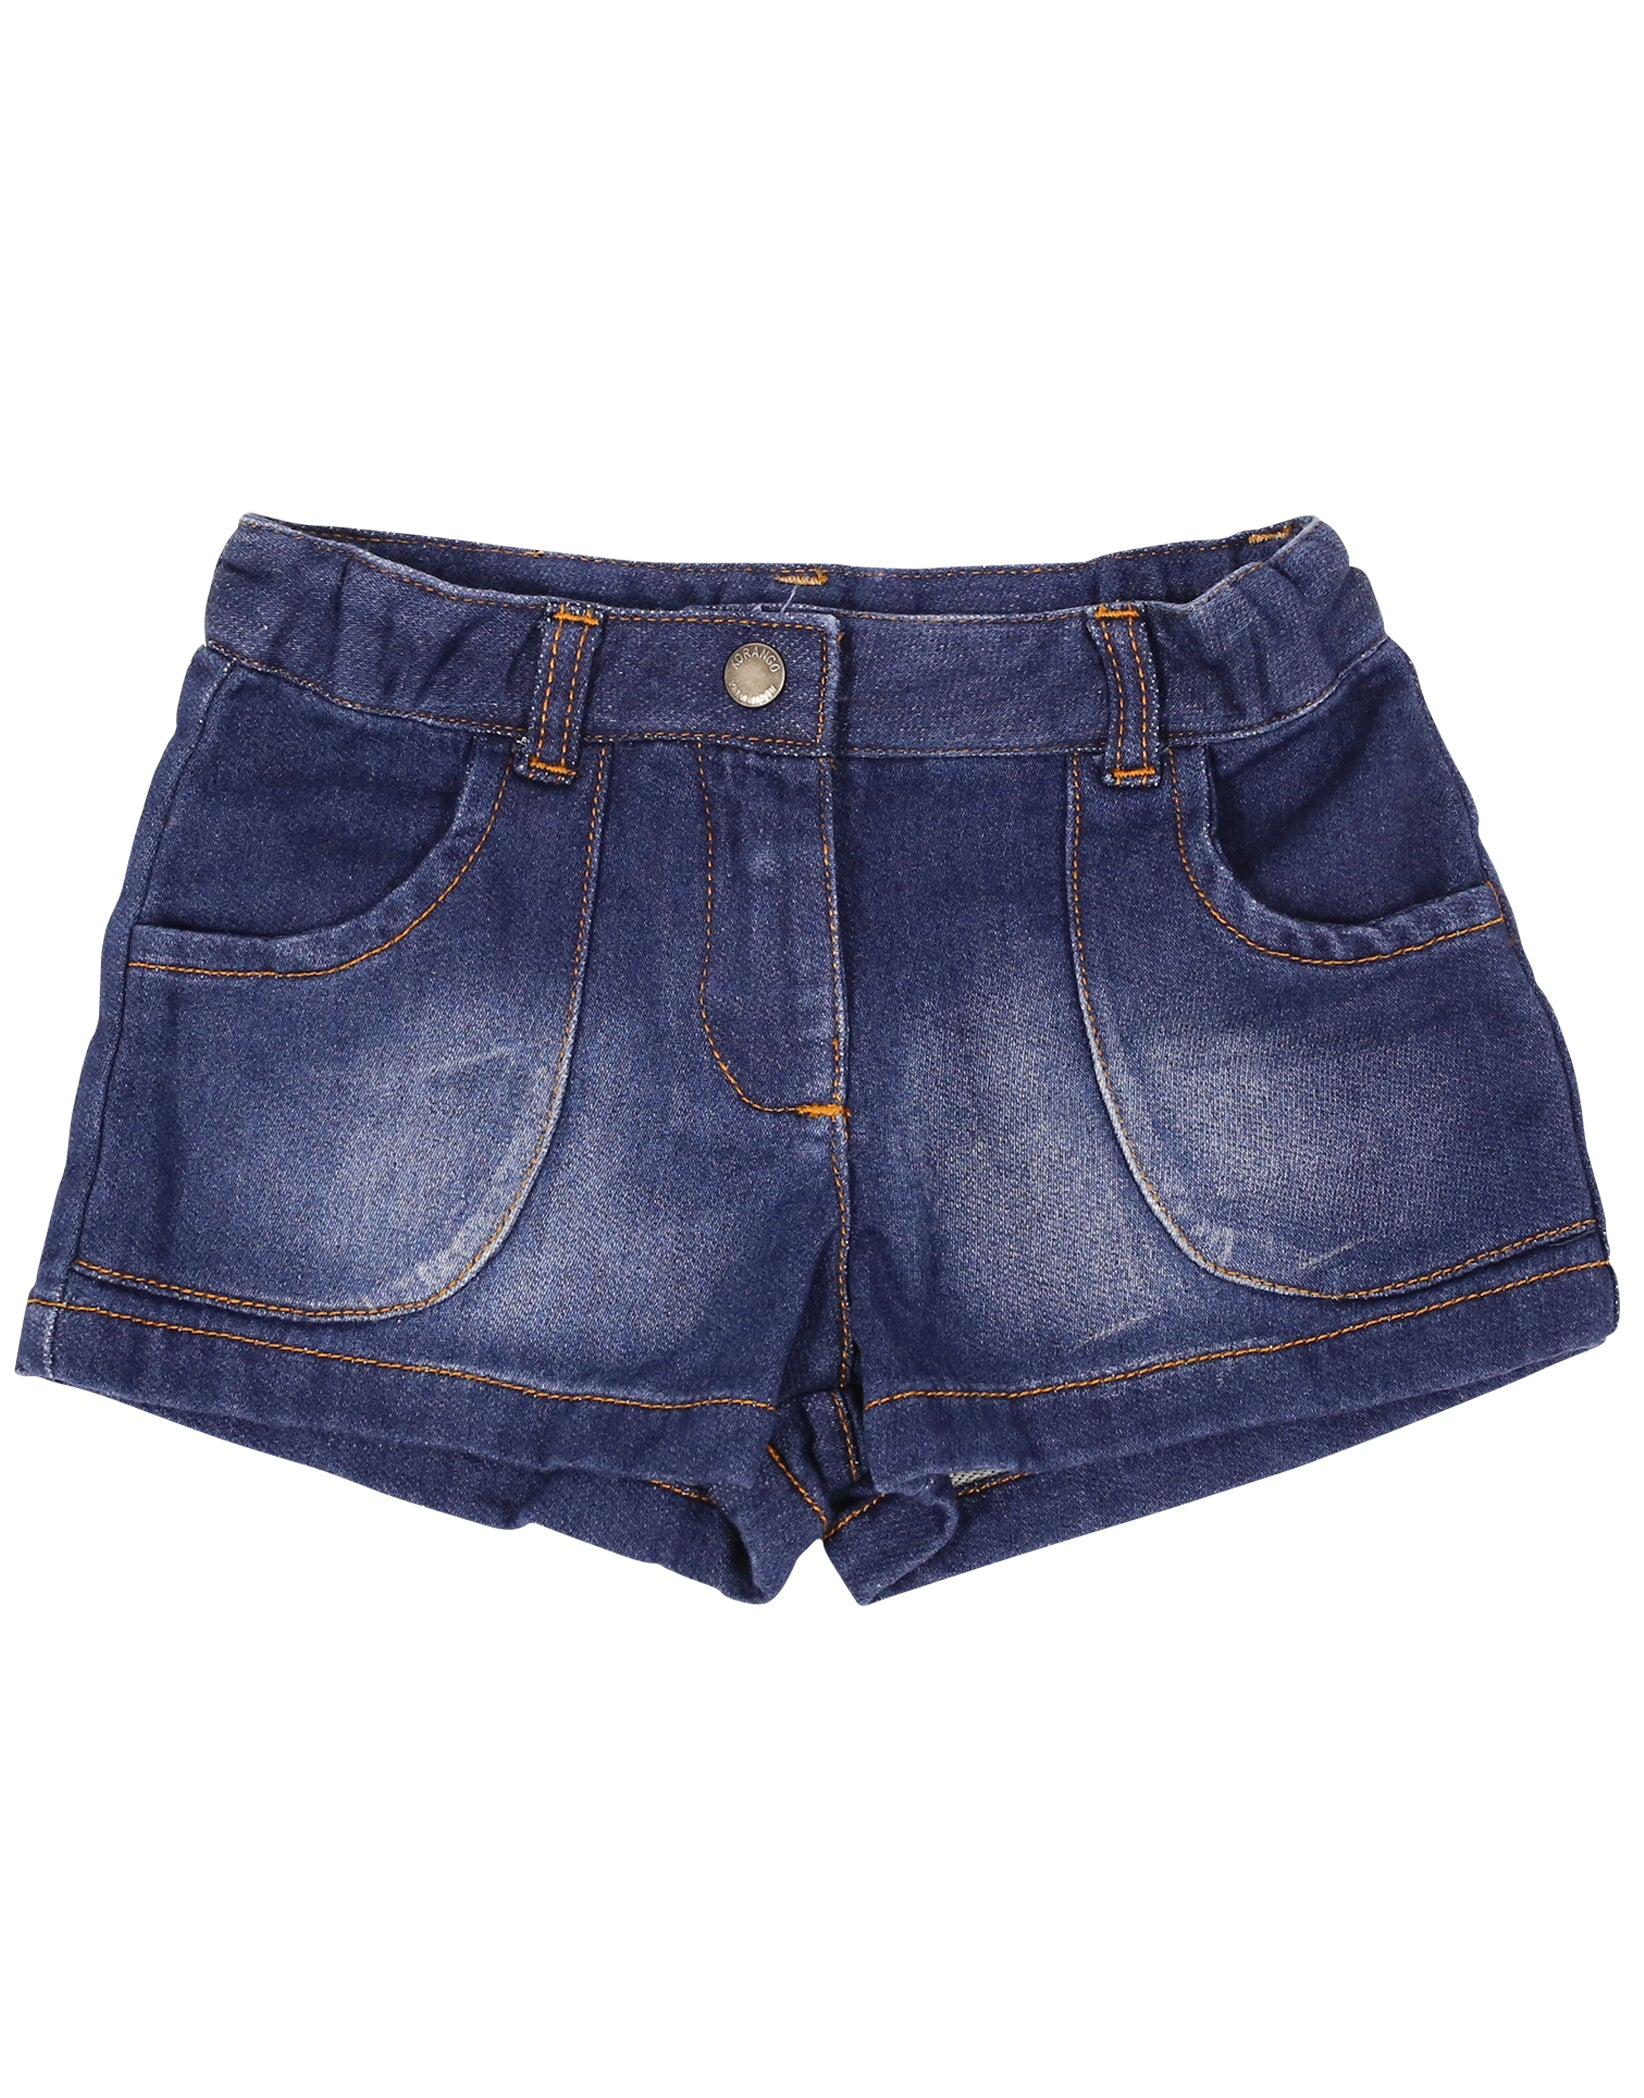 KORANGO Setting Sail Denim Knit Short